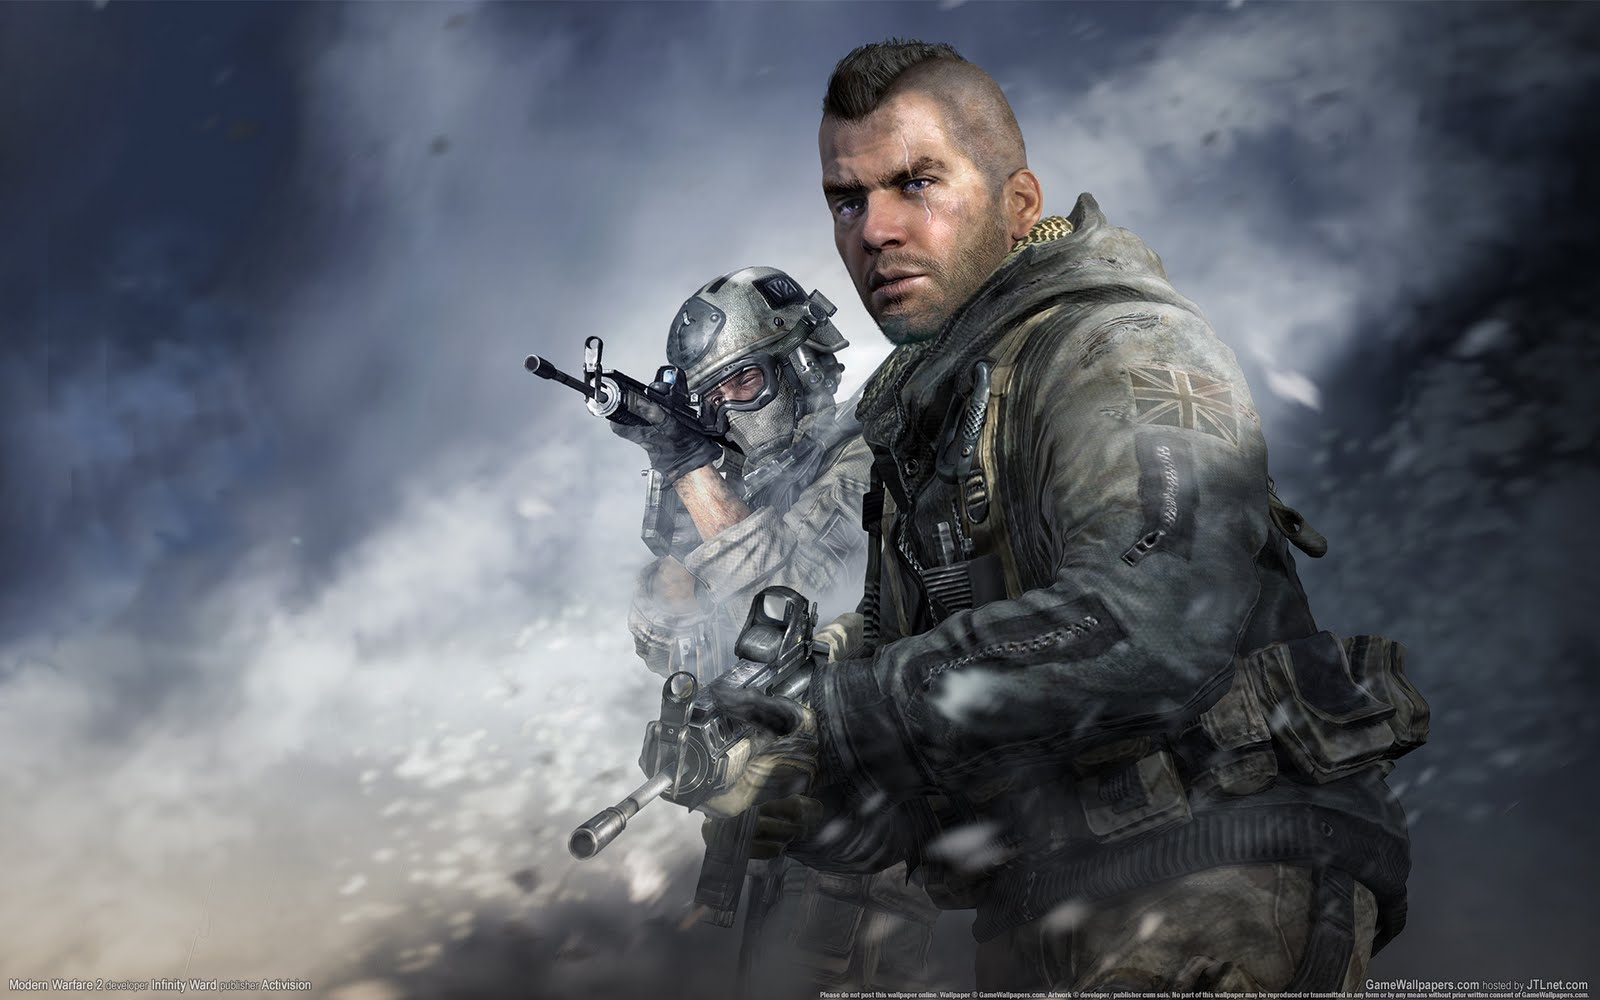 http://3.bp.blogspot.com/_99aRE8qSrcE/TIJl6ibkxRI/AAAAAAAAACs/QqnMUA9FJ1Q/s1600/wallpaper_modern_warfare_2_07_1920x1200.jpg